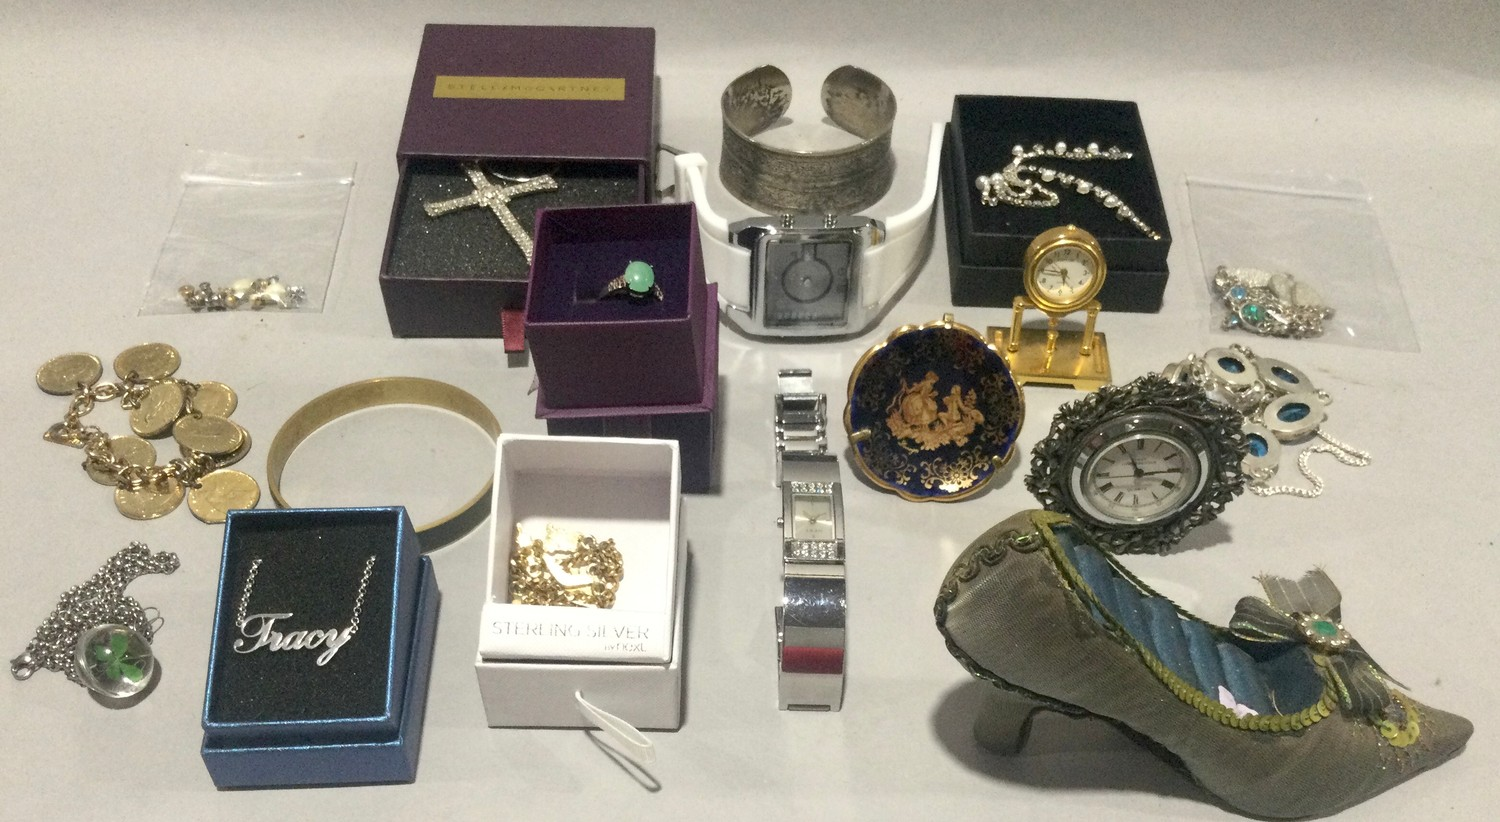 Large carry box with costume jewellery to include silver - Image 2 of 5